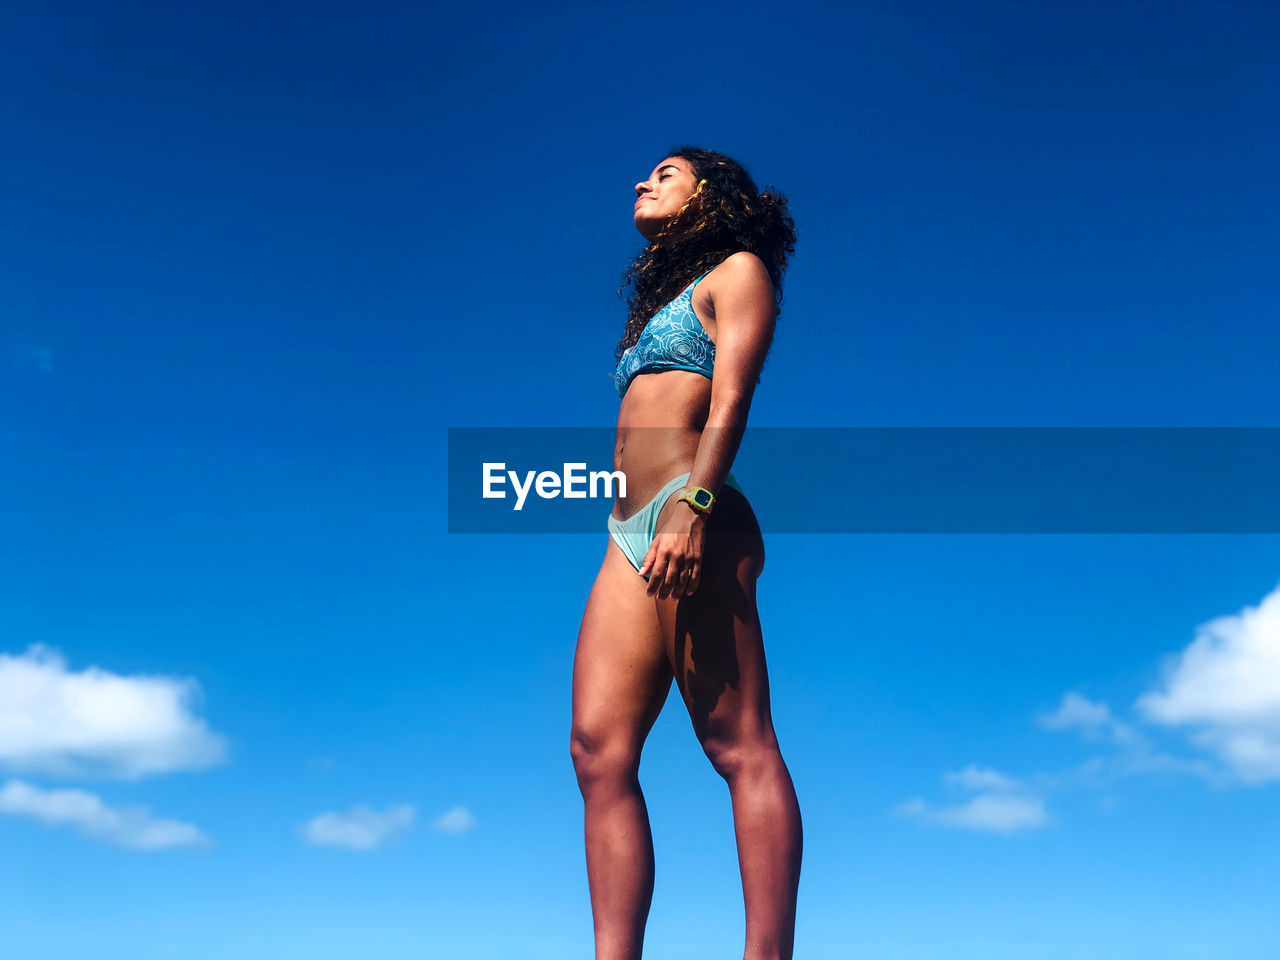 Low angle view of woman in bikini standing against blue sky